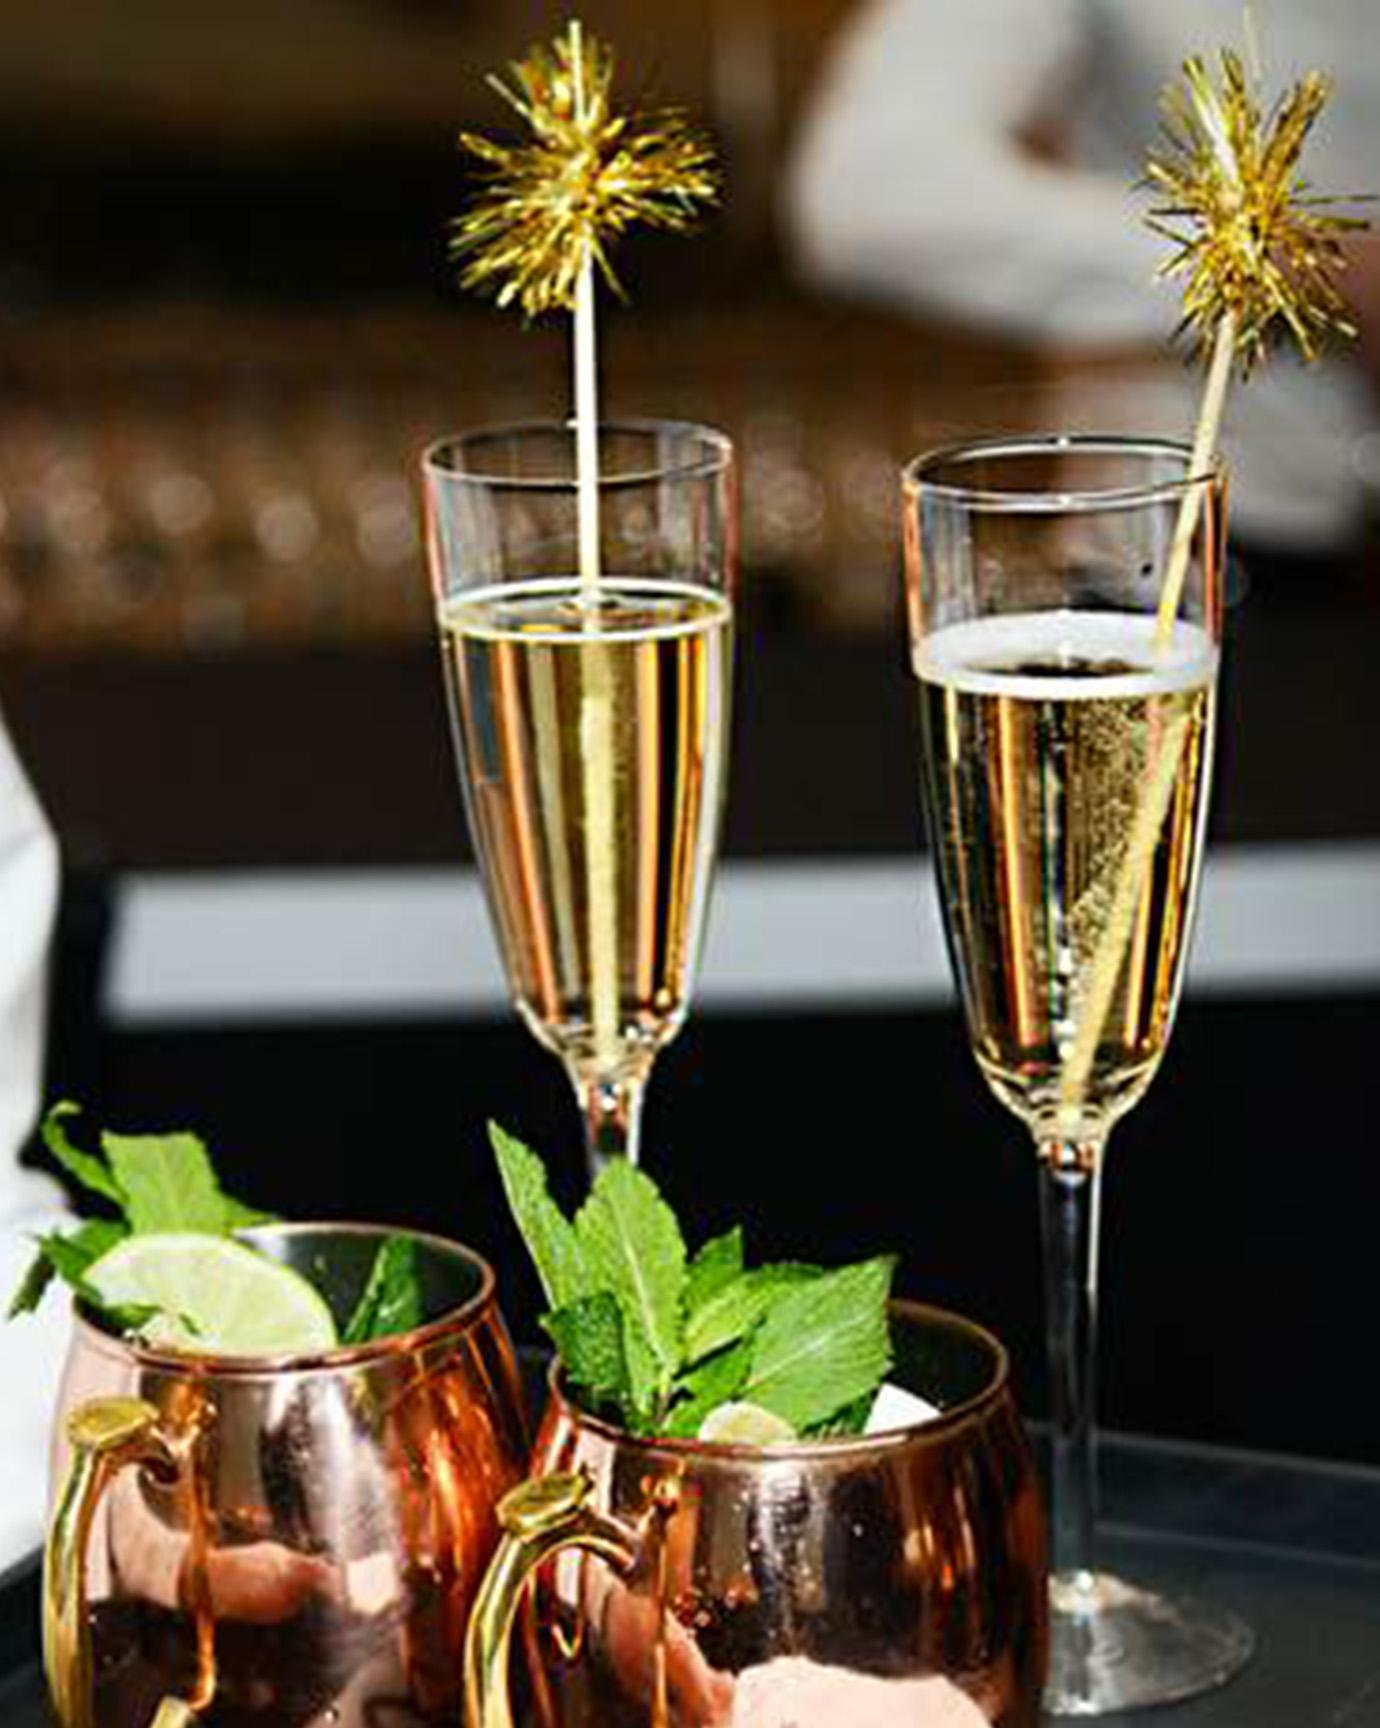 12-champagne-sparklers-1115